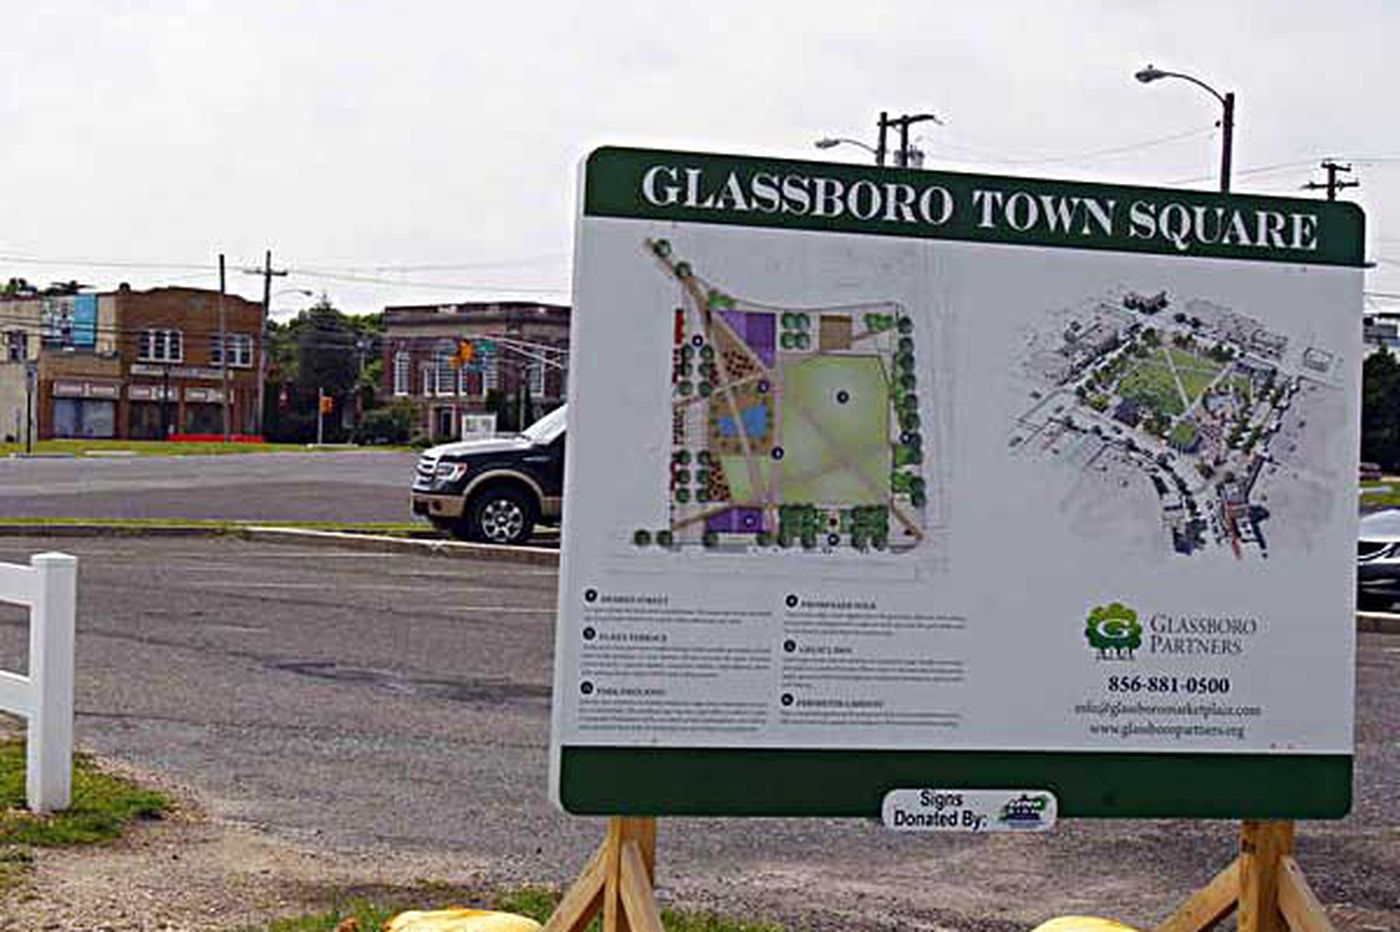 Glassboro's downtown tries again for revitalization